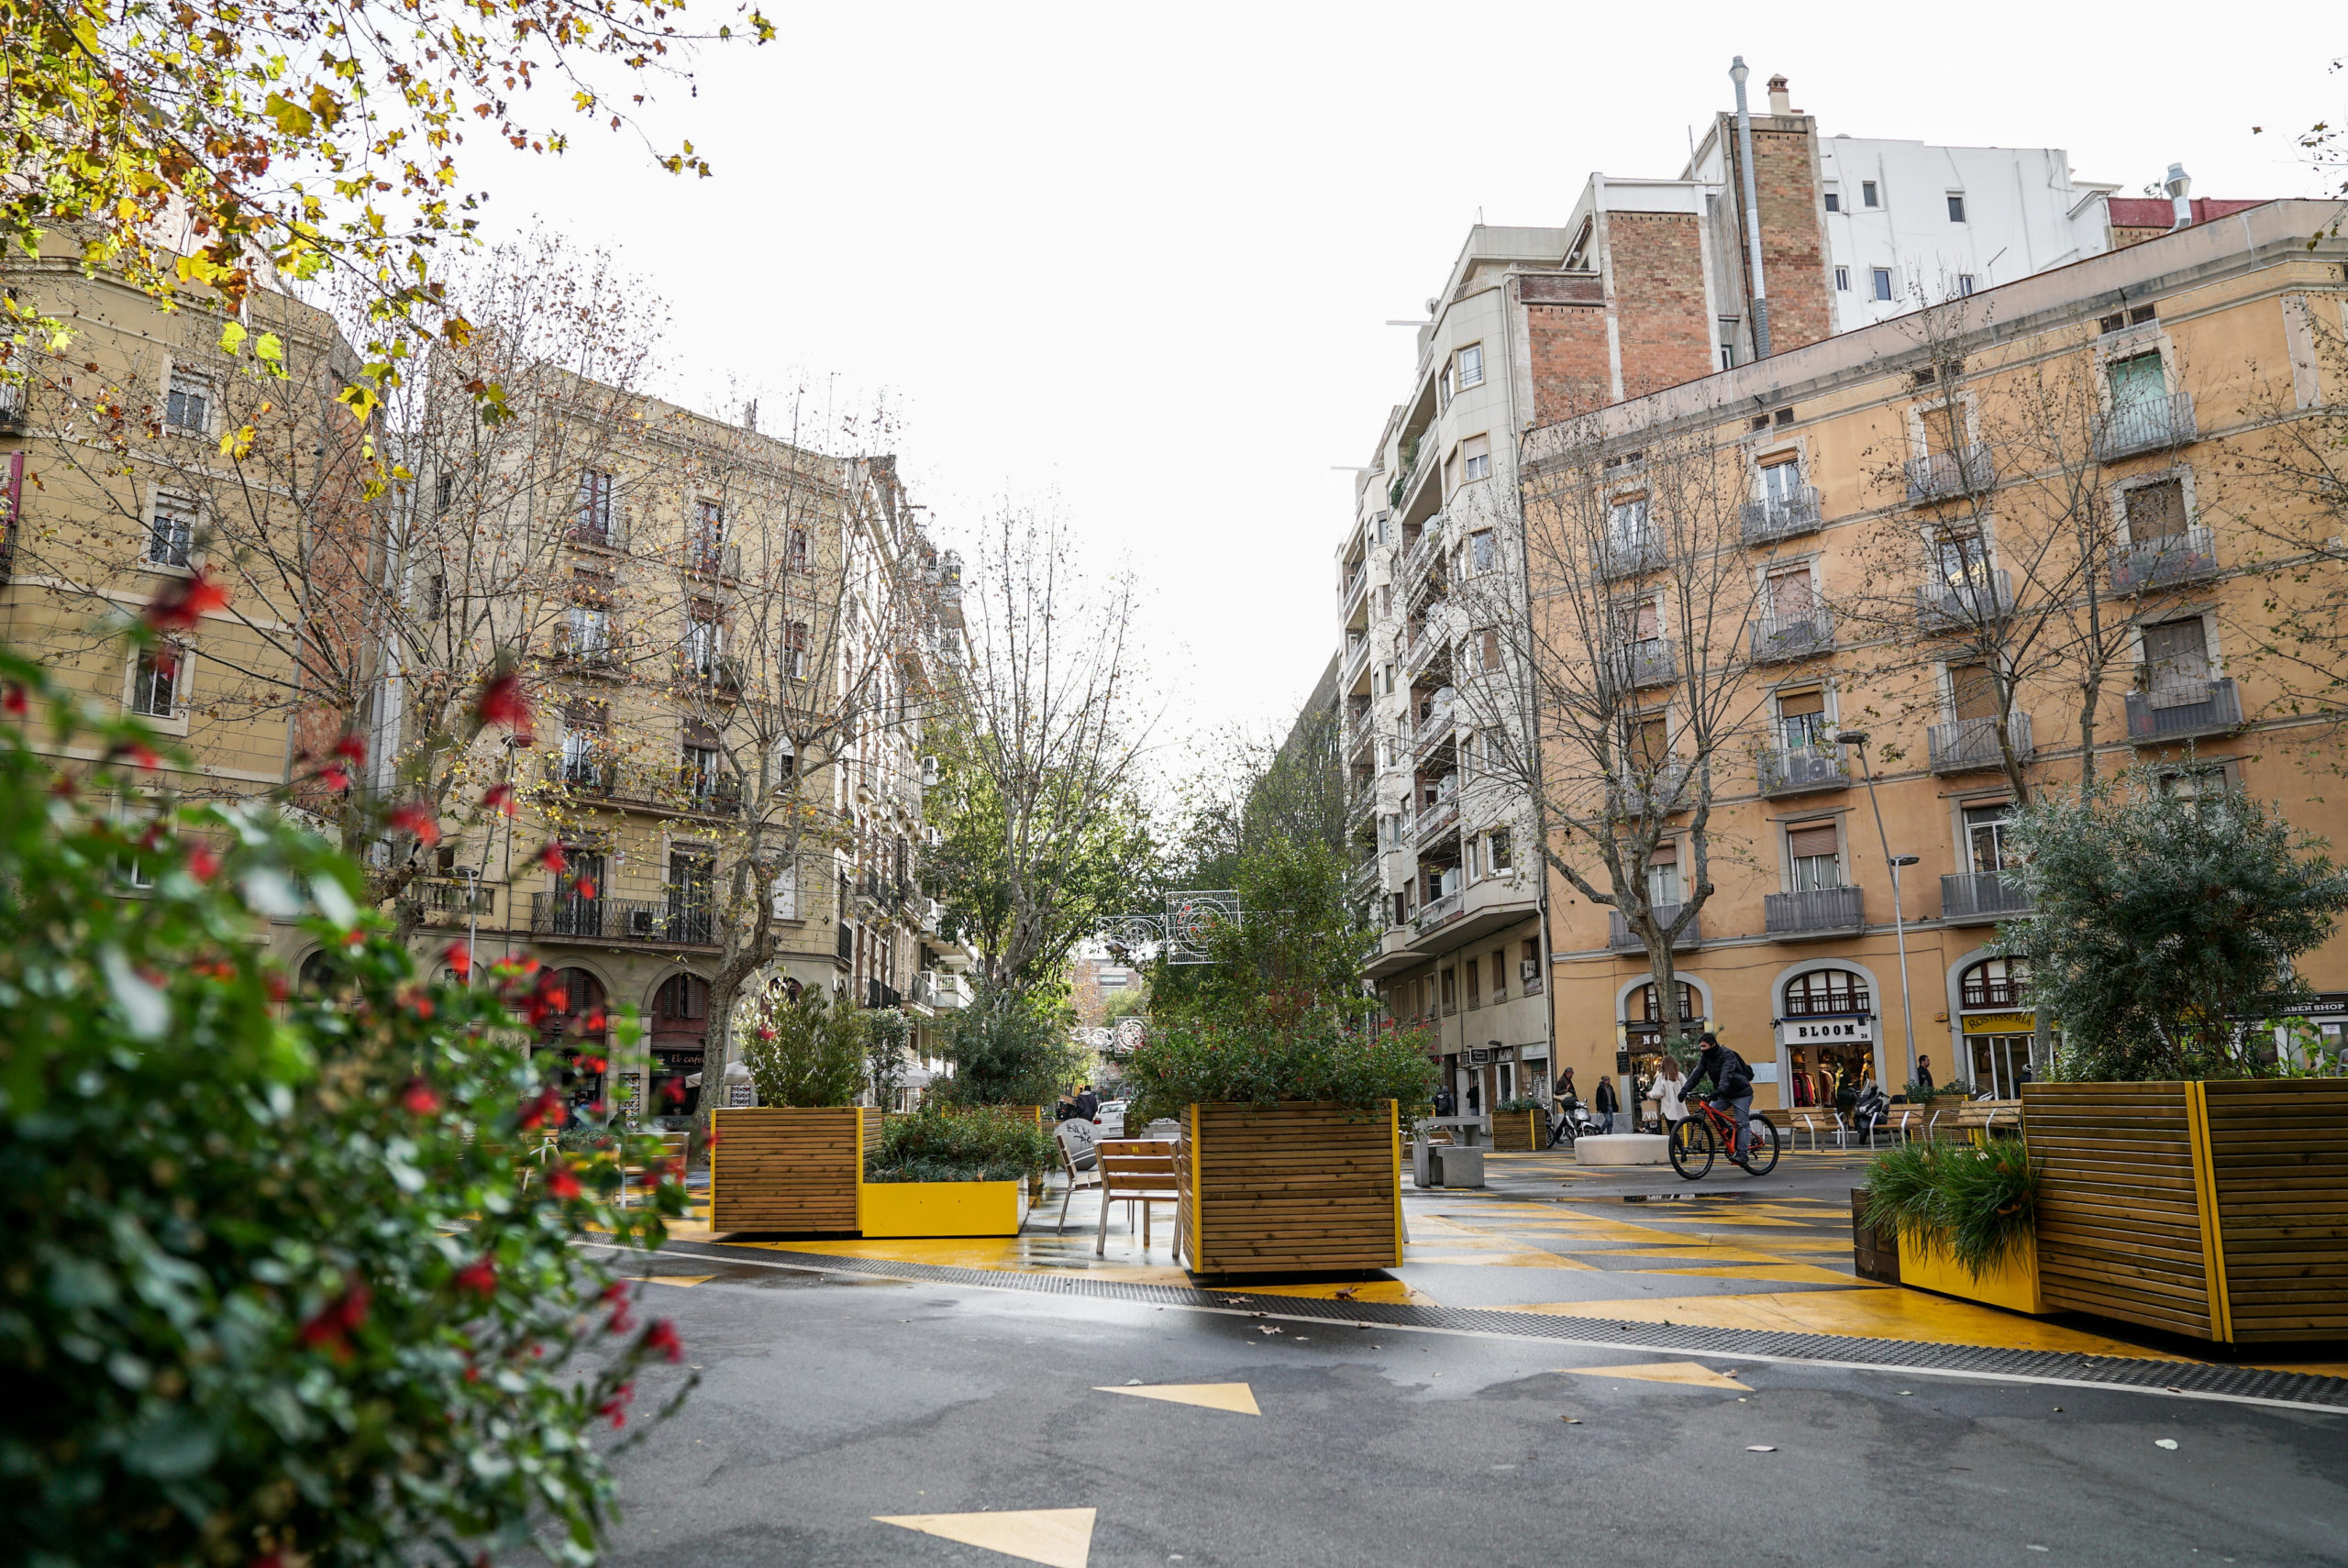 Barcelona tackles air pollution by expanding its 'superblocks' street plan